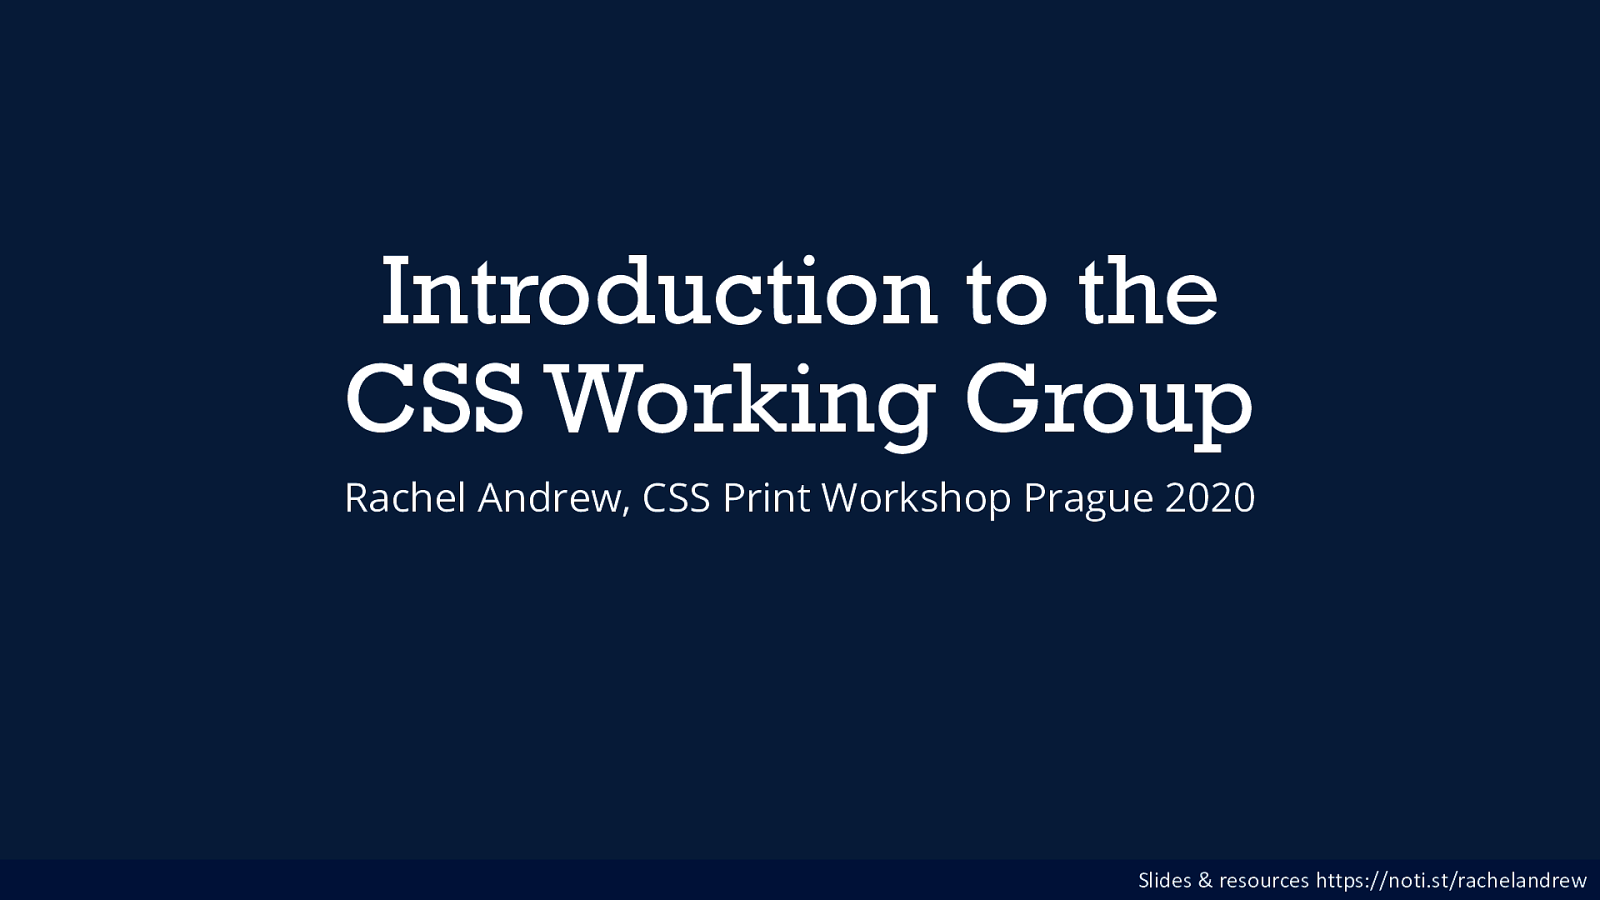 Introduction to the CSS Working Group